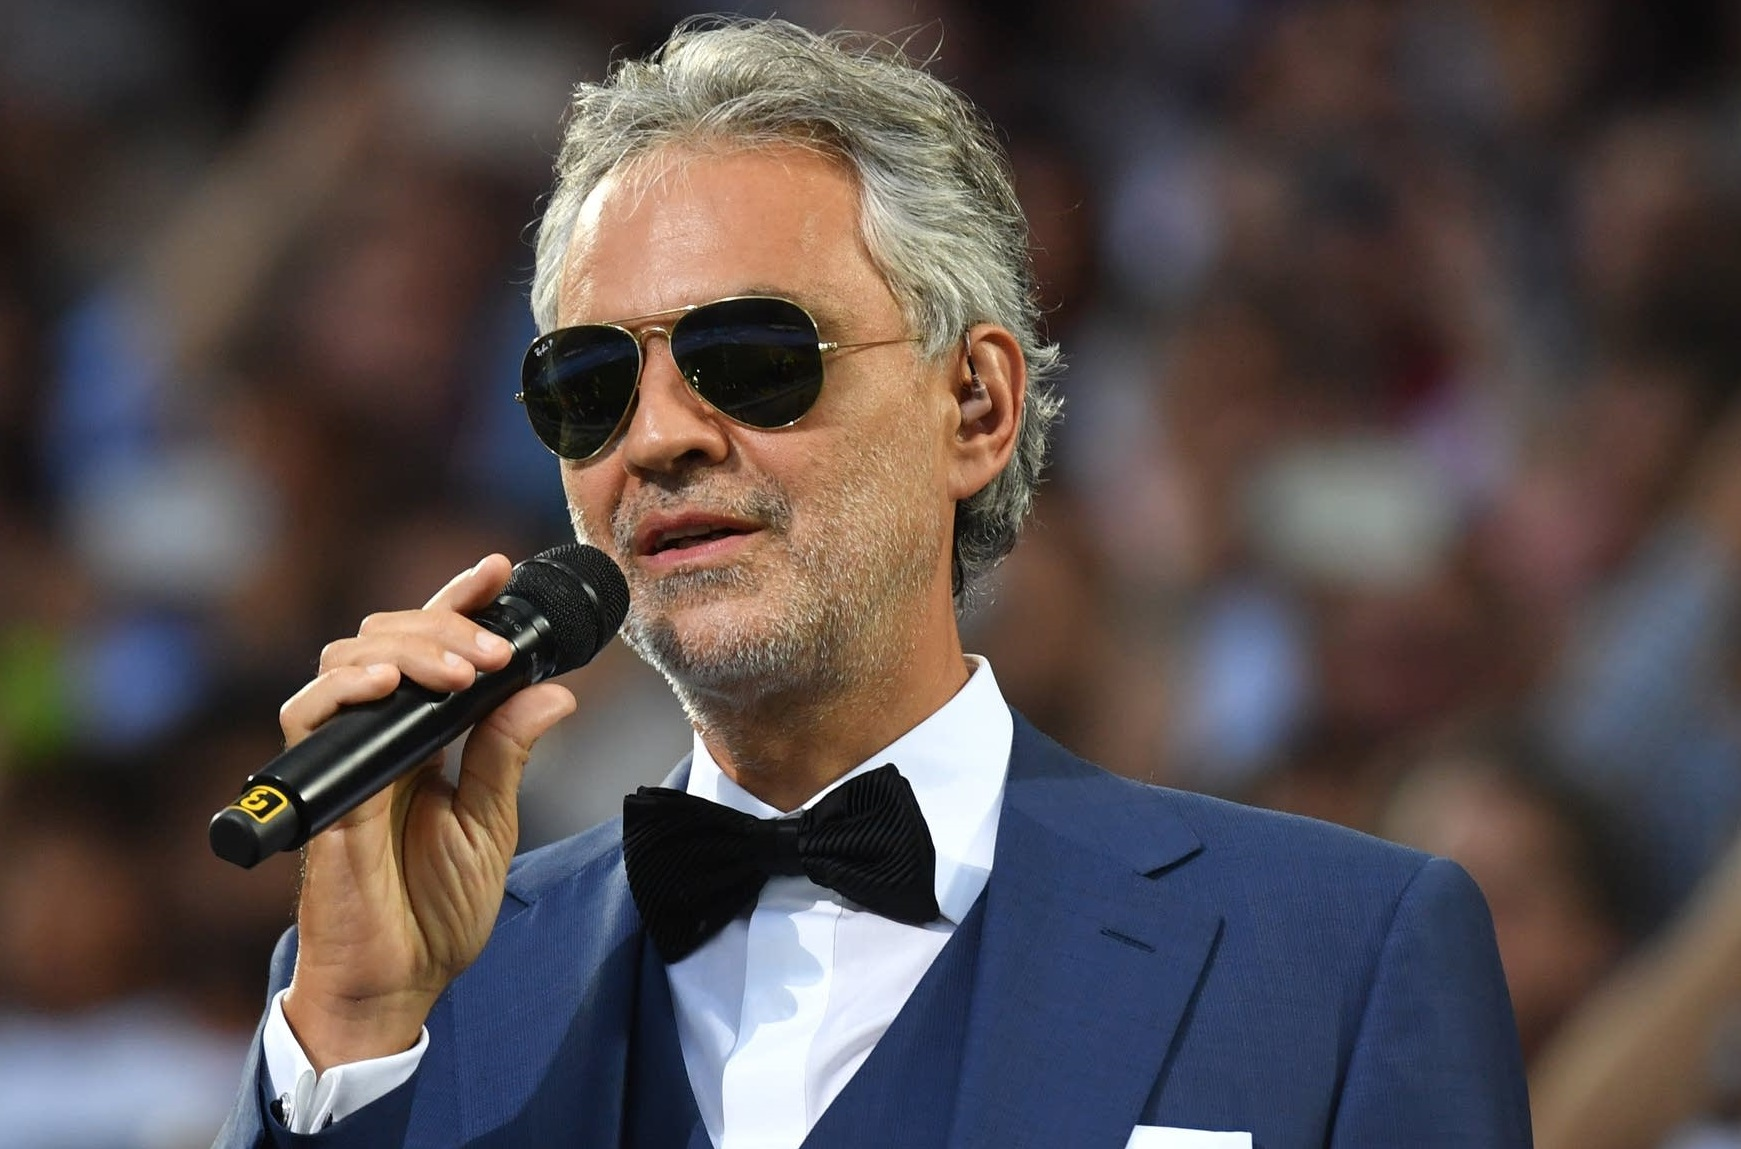 Offer Andrea Bocelli Concert – 24th July 2020